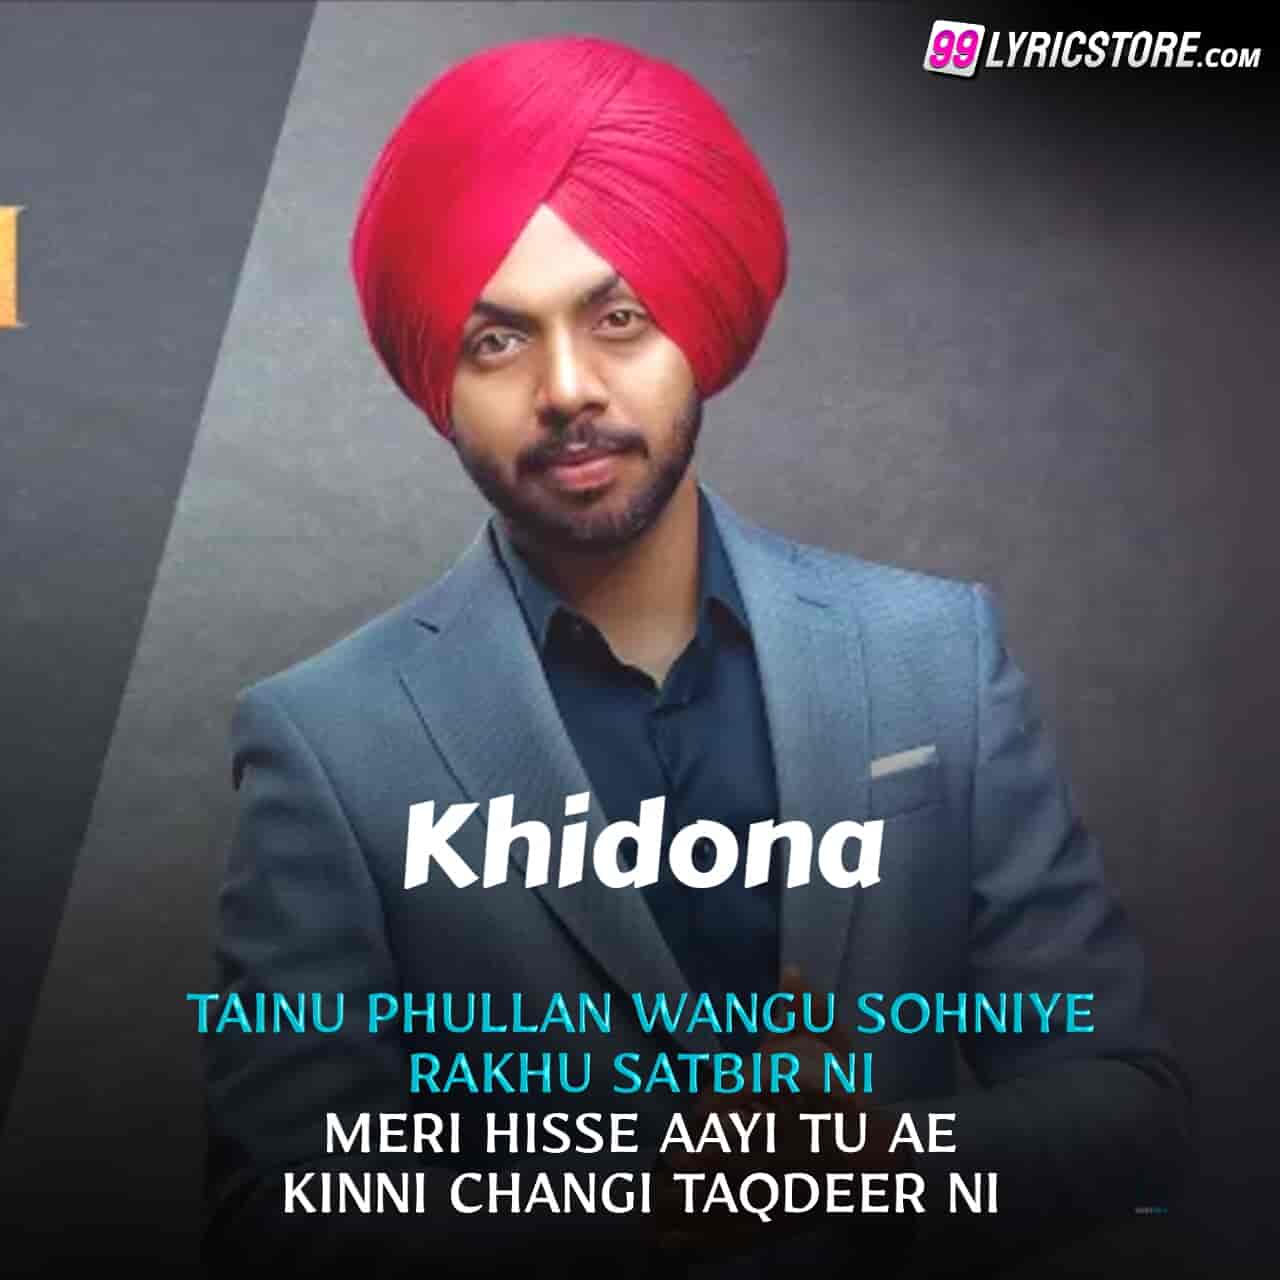 Khidona Punjabi Song Lyrics sung by Satbir Aujla